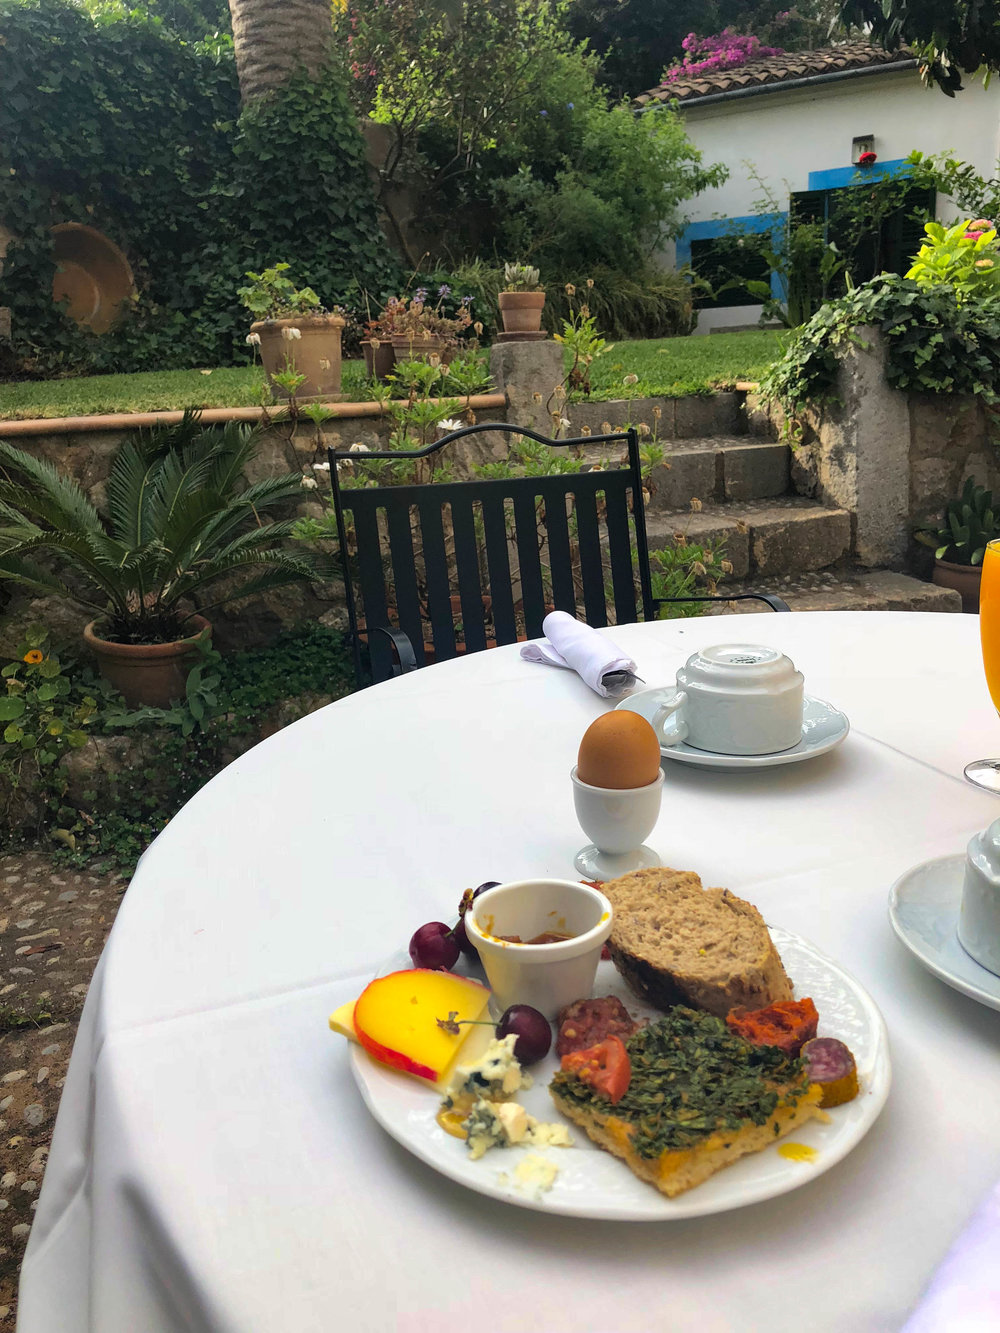 Breakfast in our hotel garden in Soller